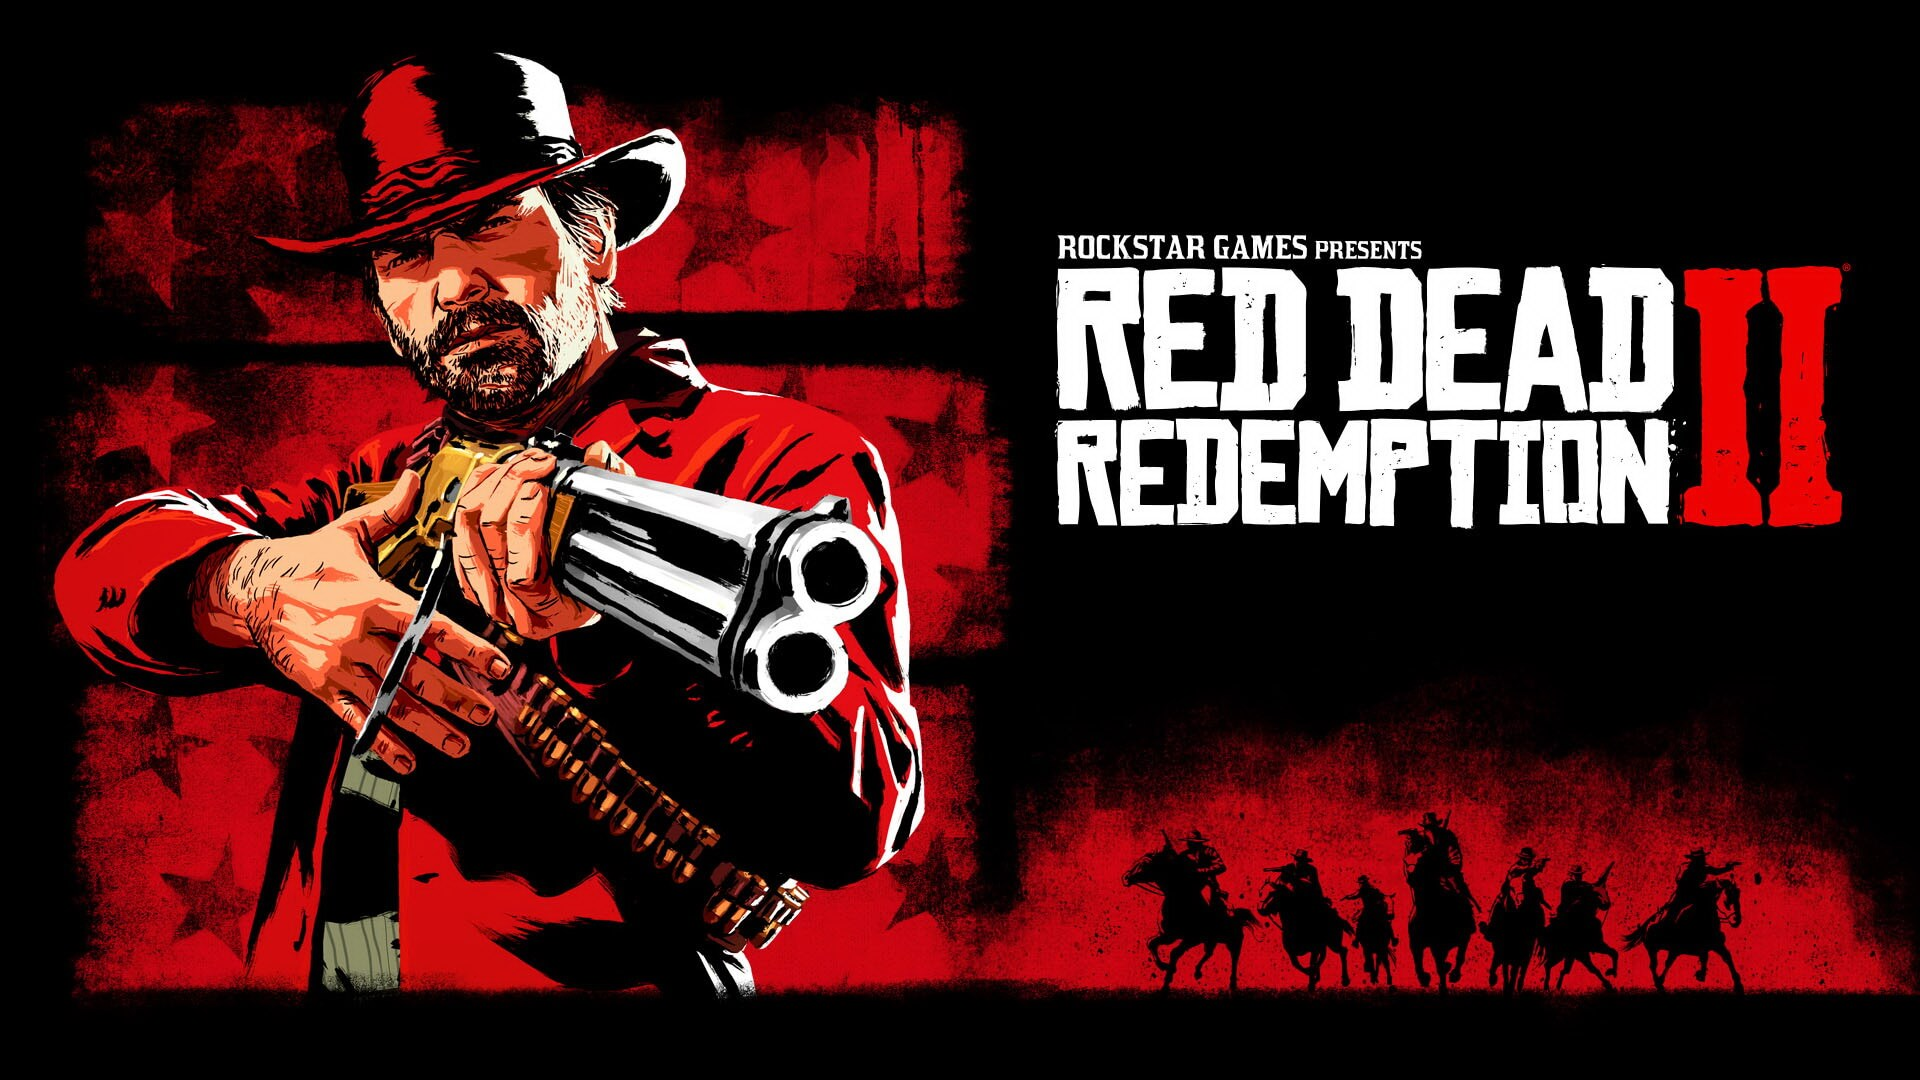 Red Dead Redemption 2 - Red Dead Redemption 2